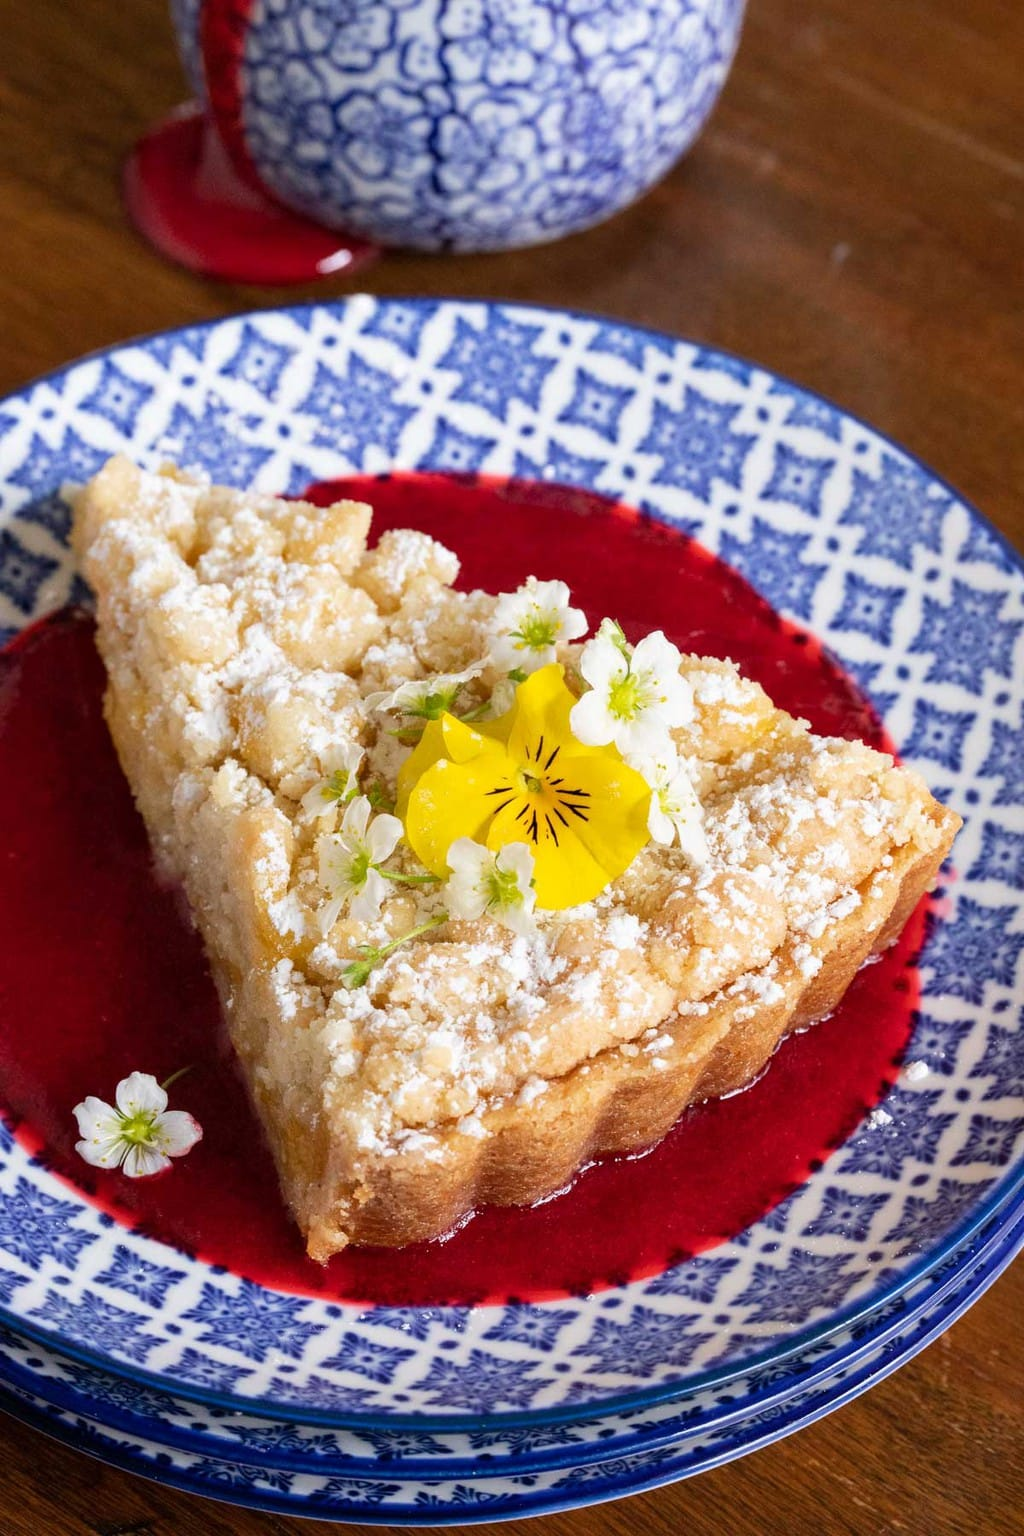 Photo of a slice of Lemon Curd Shortbread Tart in a pool of raspberry coulis decorated with yellow pansies.